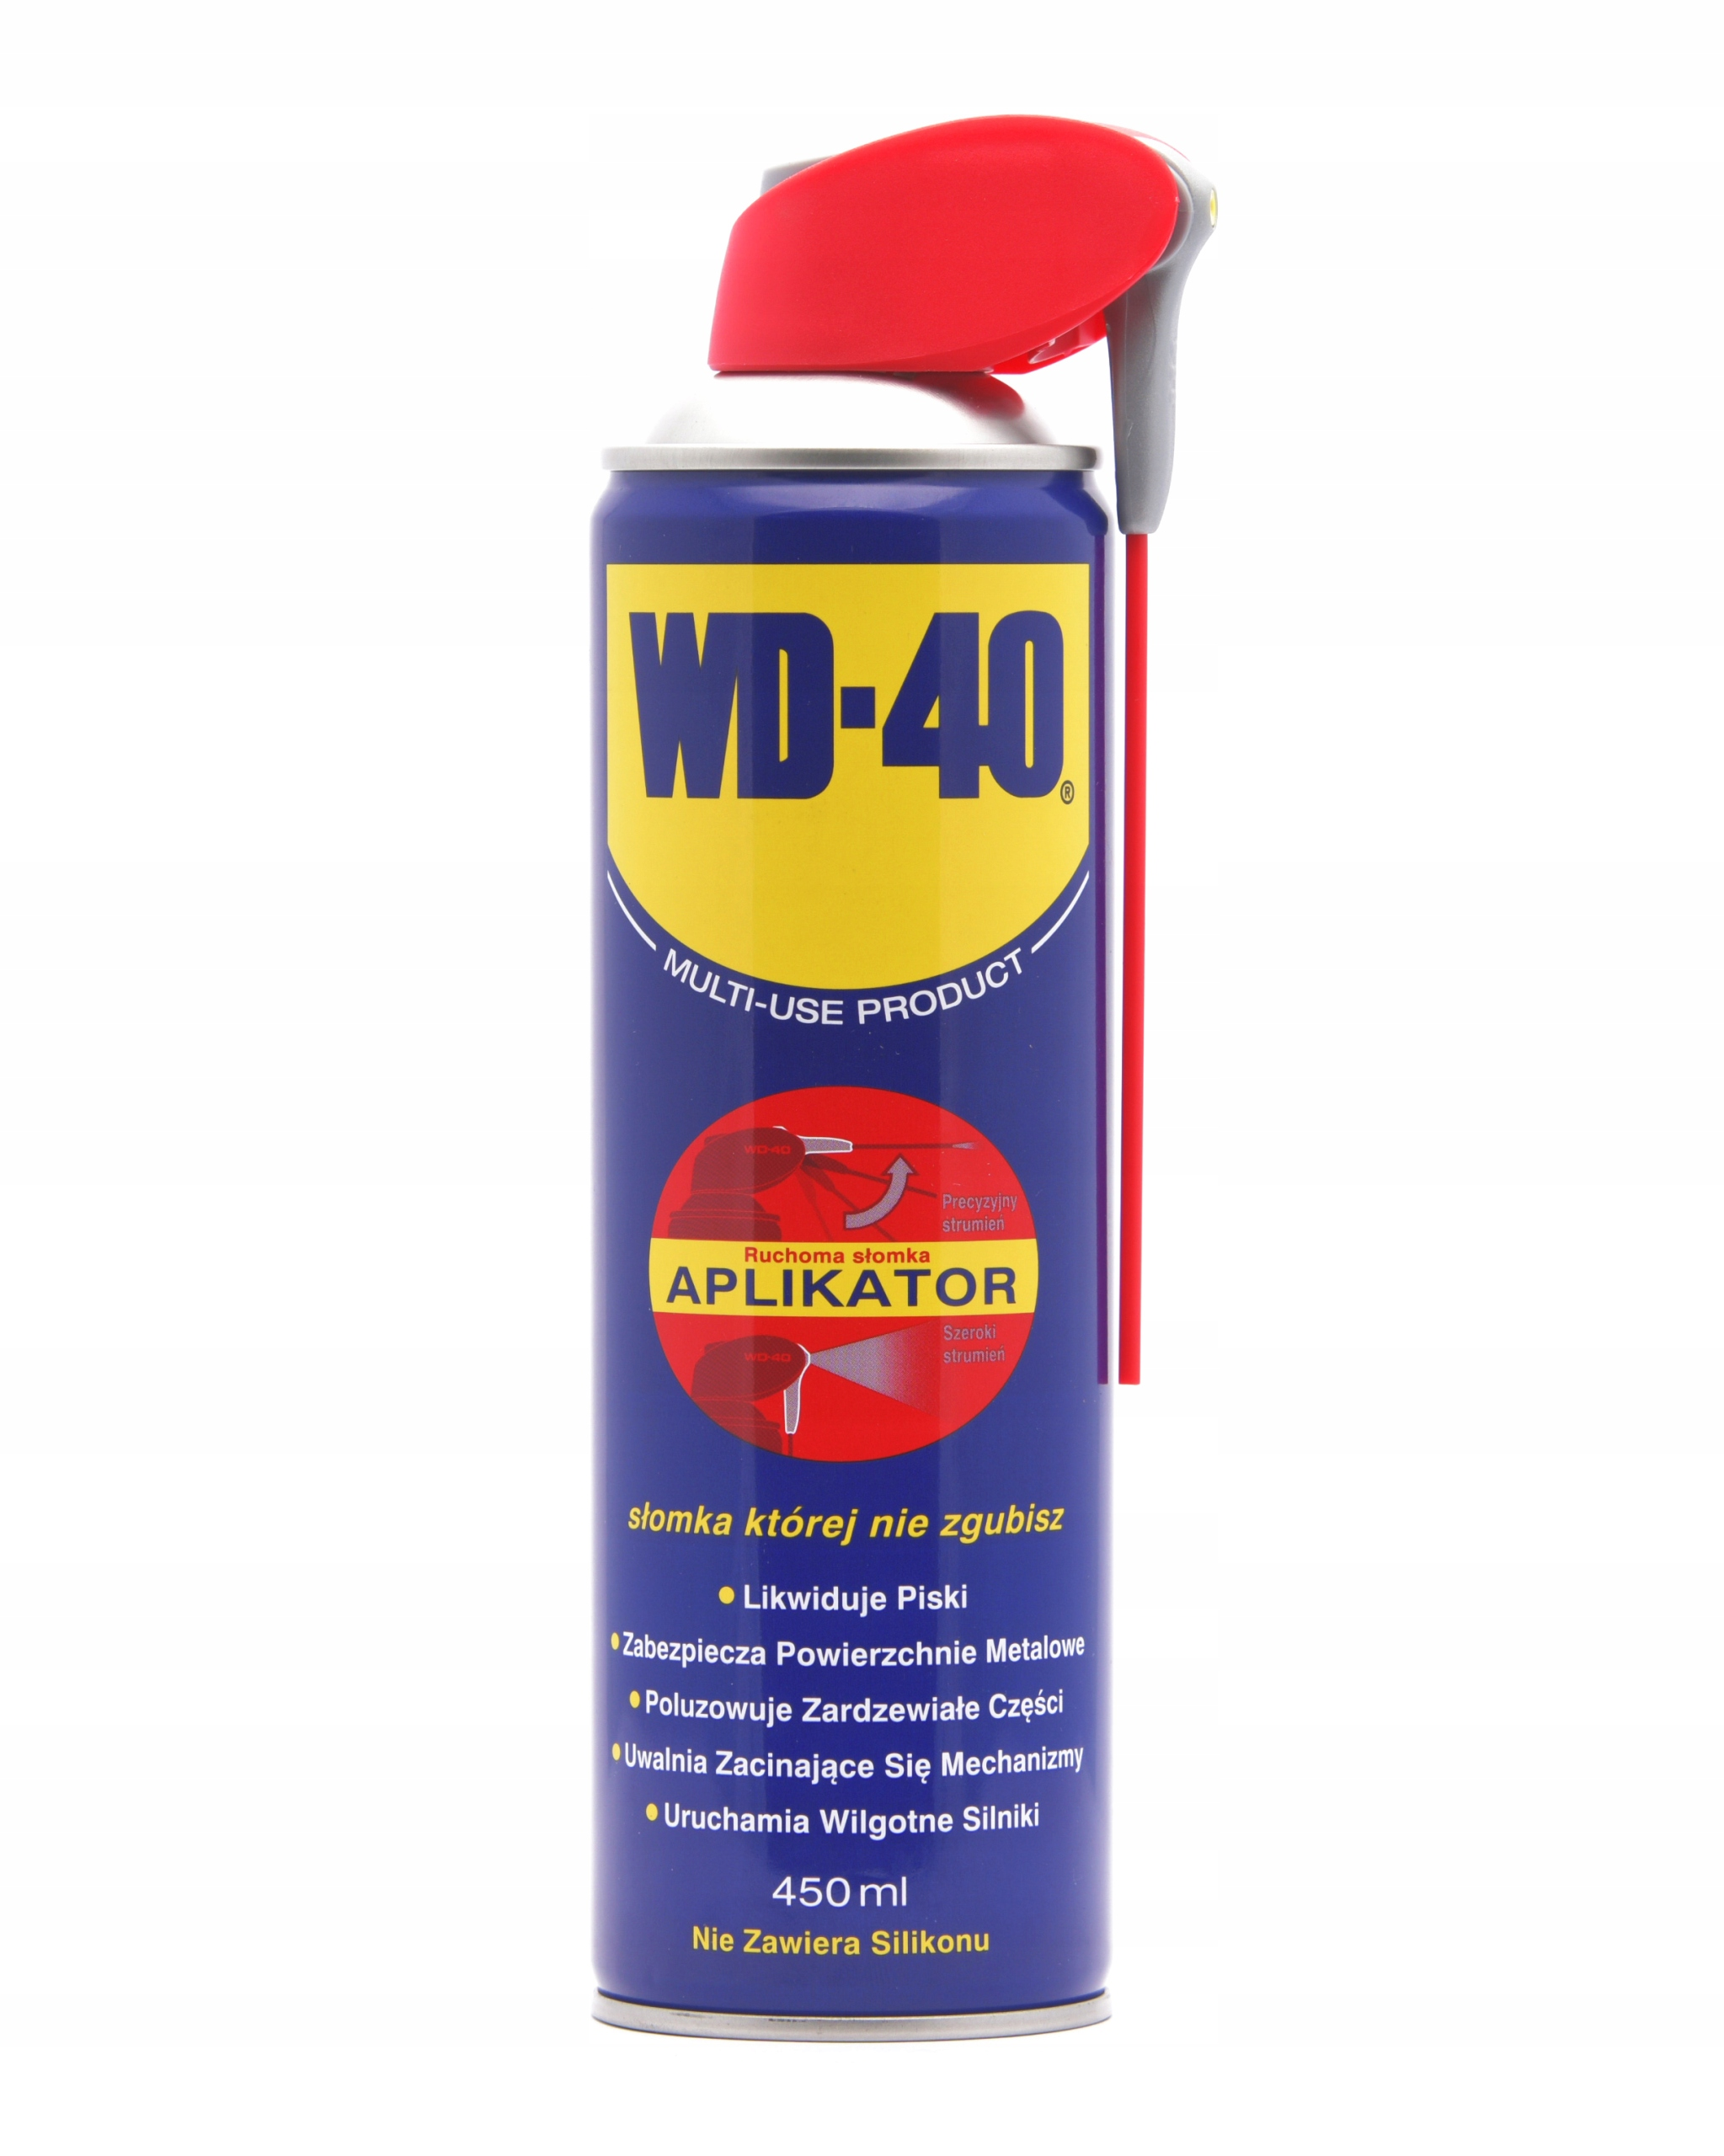 Item WD-40 APPLICATOR - tool rust remover FOR BOLTS - 450 ml